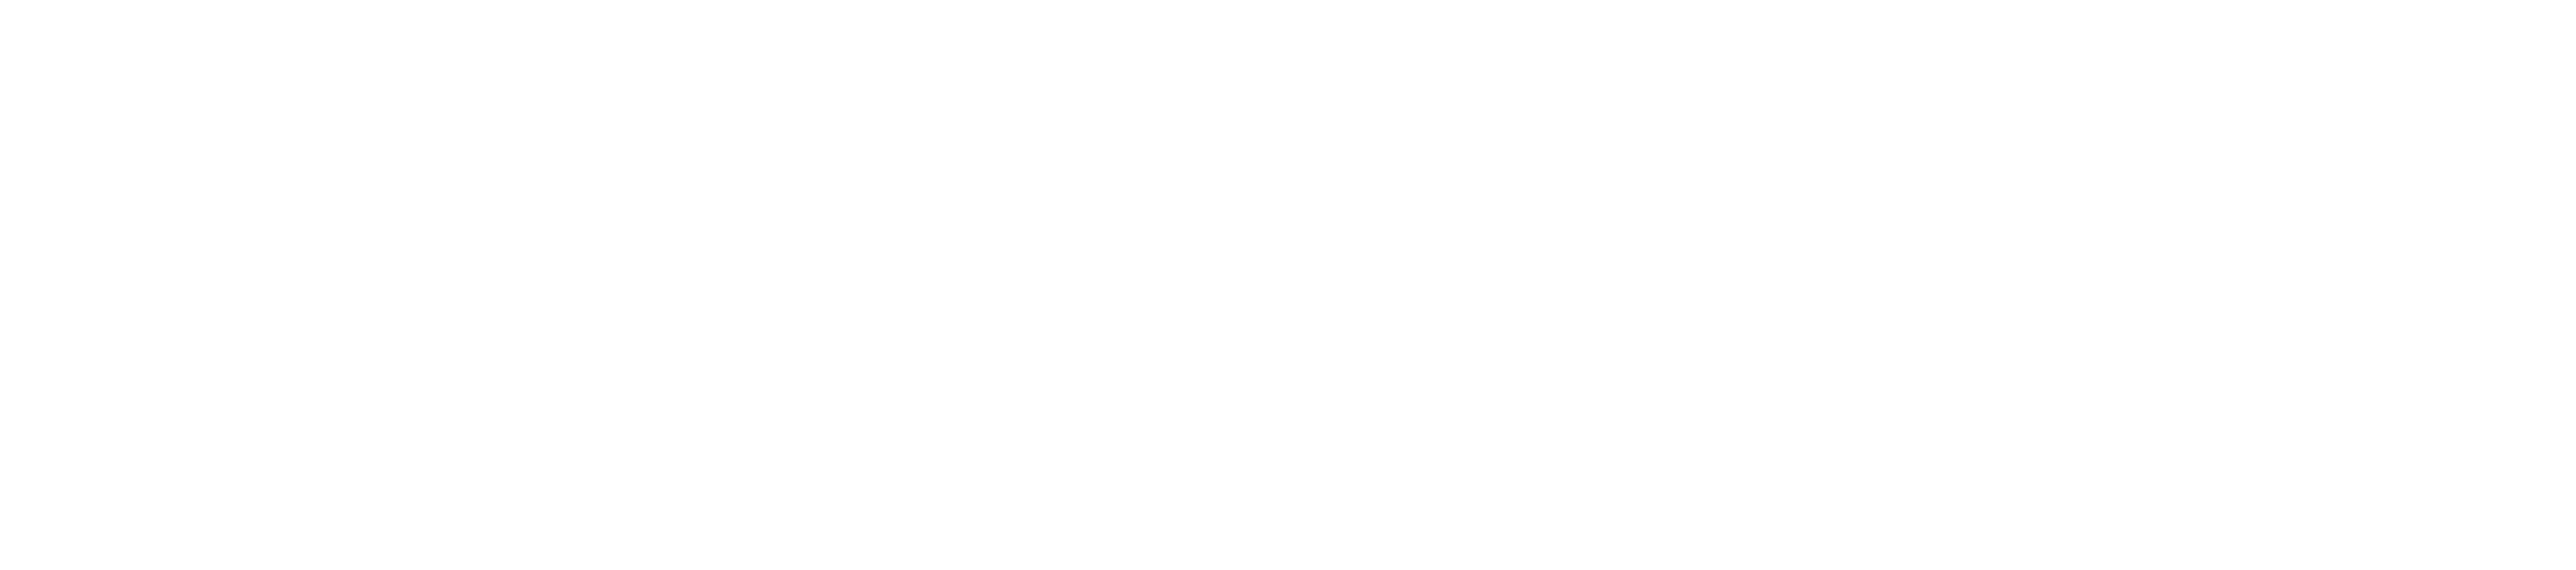 Logo CEE Digital Alliance white